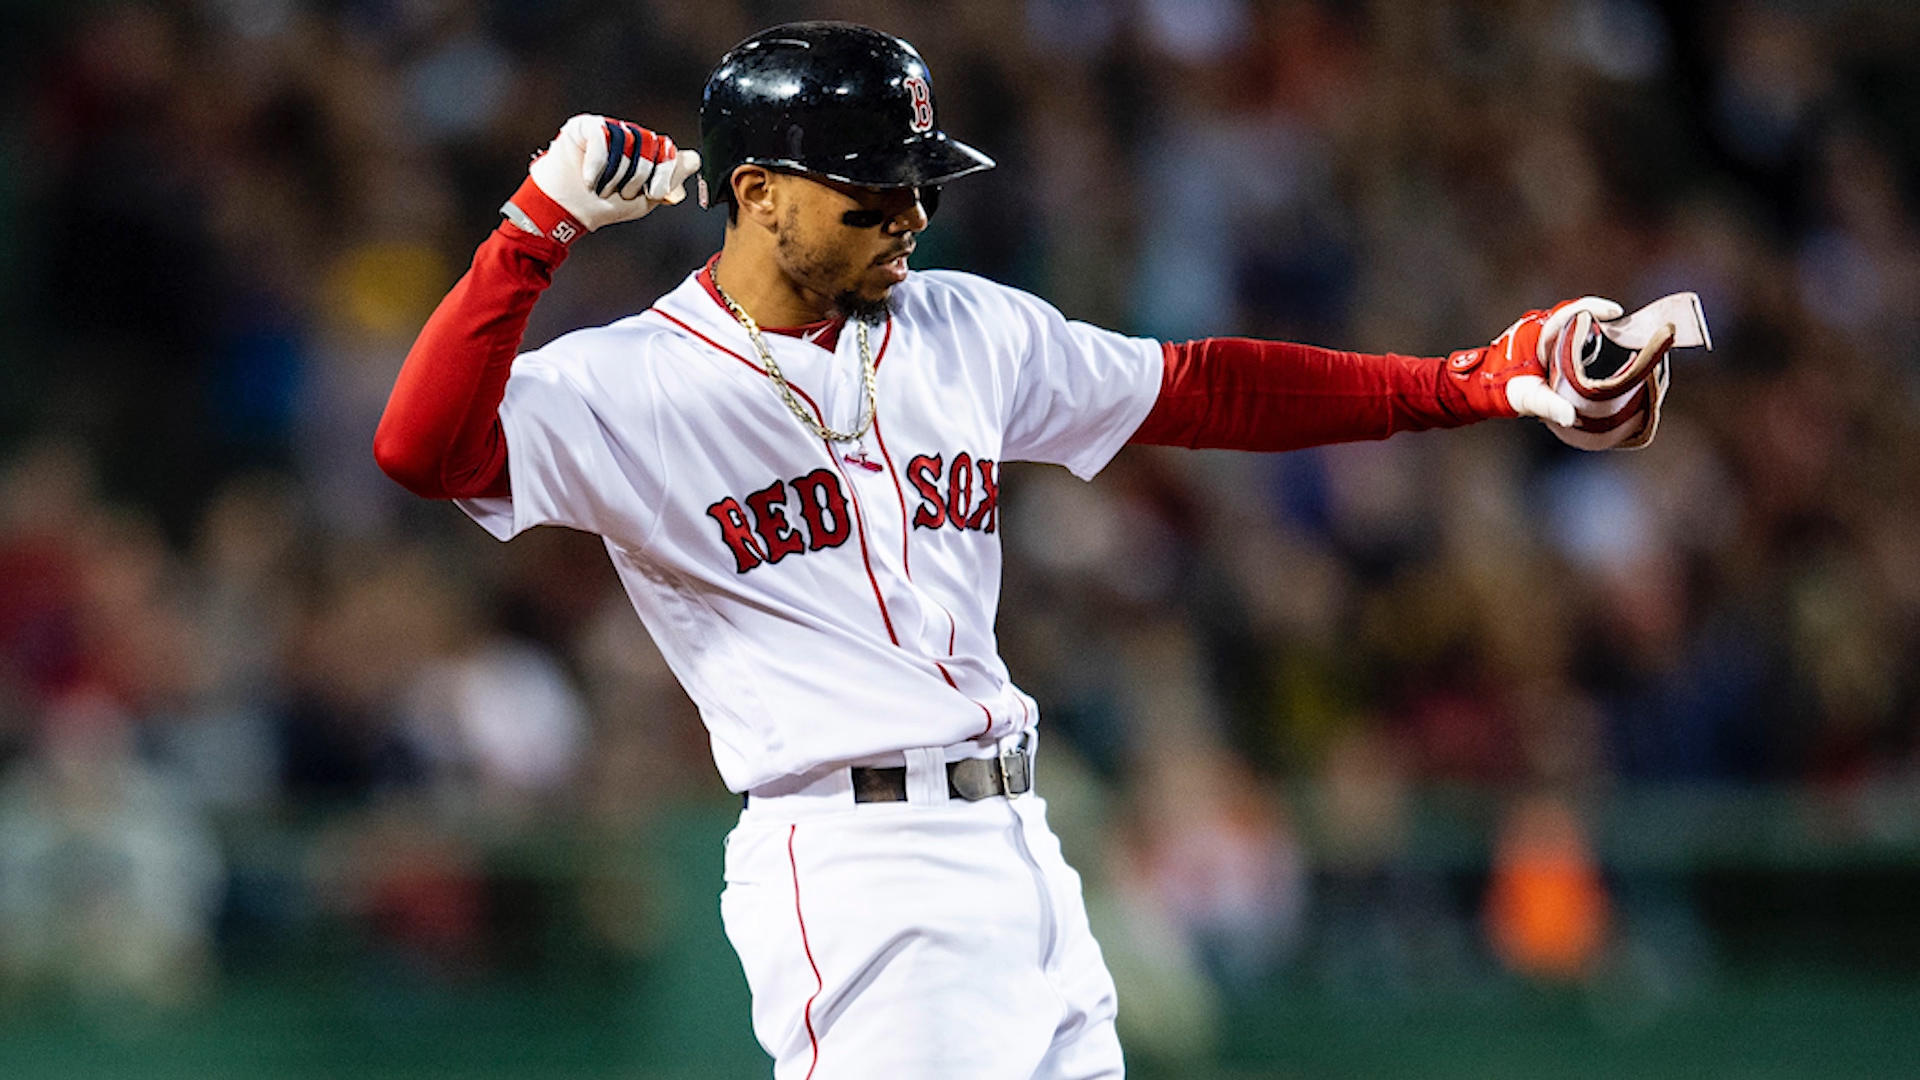 Fantasy Baseball Rankings 2019: Sleepers from proven model that predicted Scooter Gennett's strong season